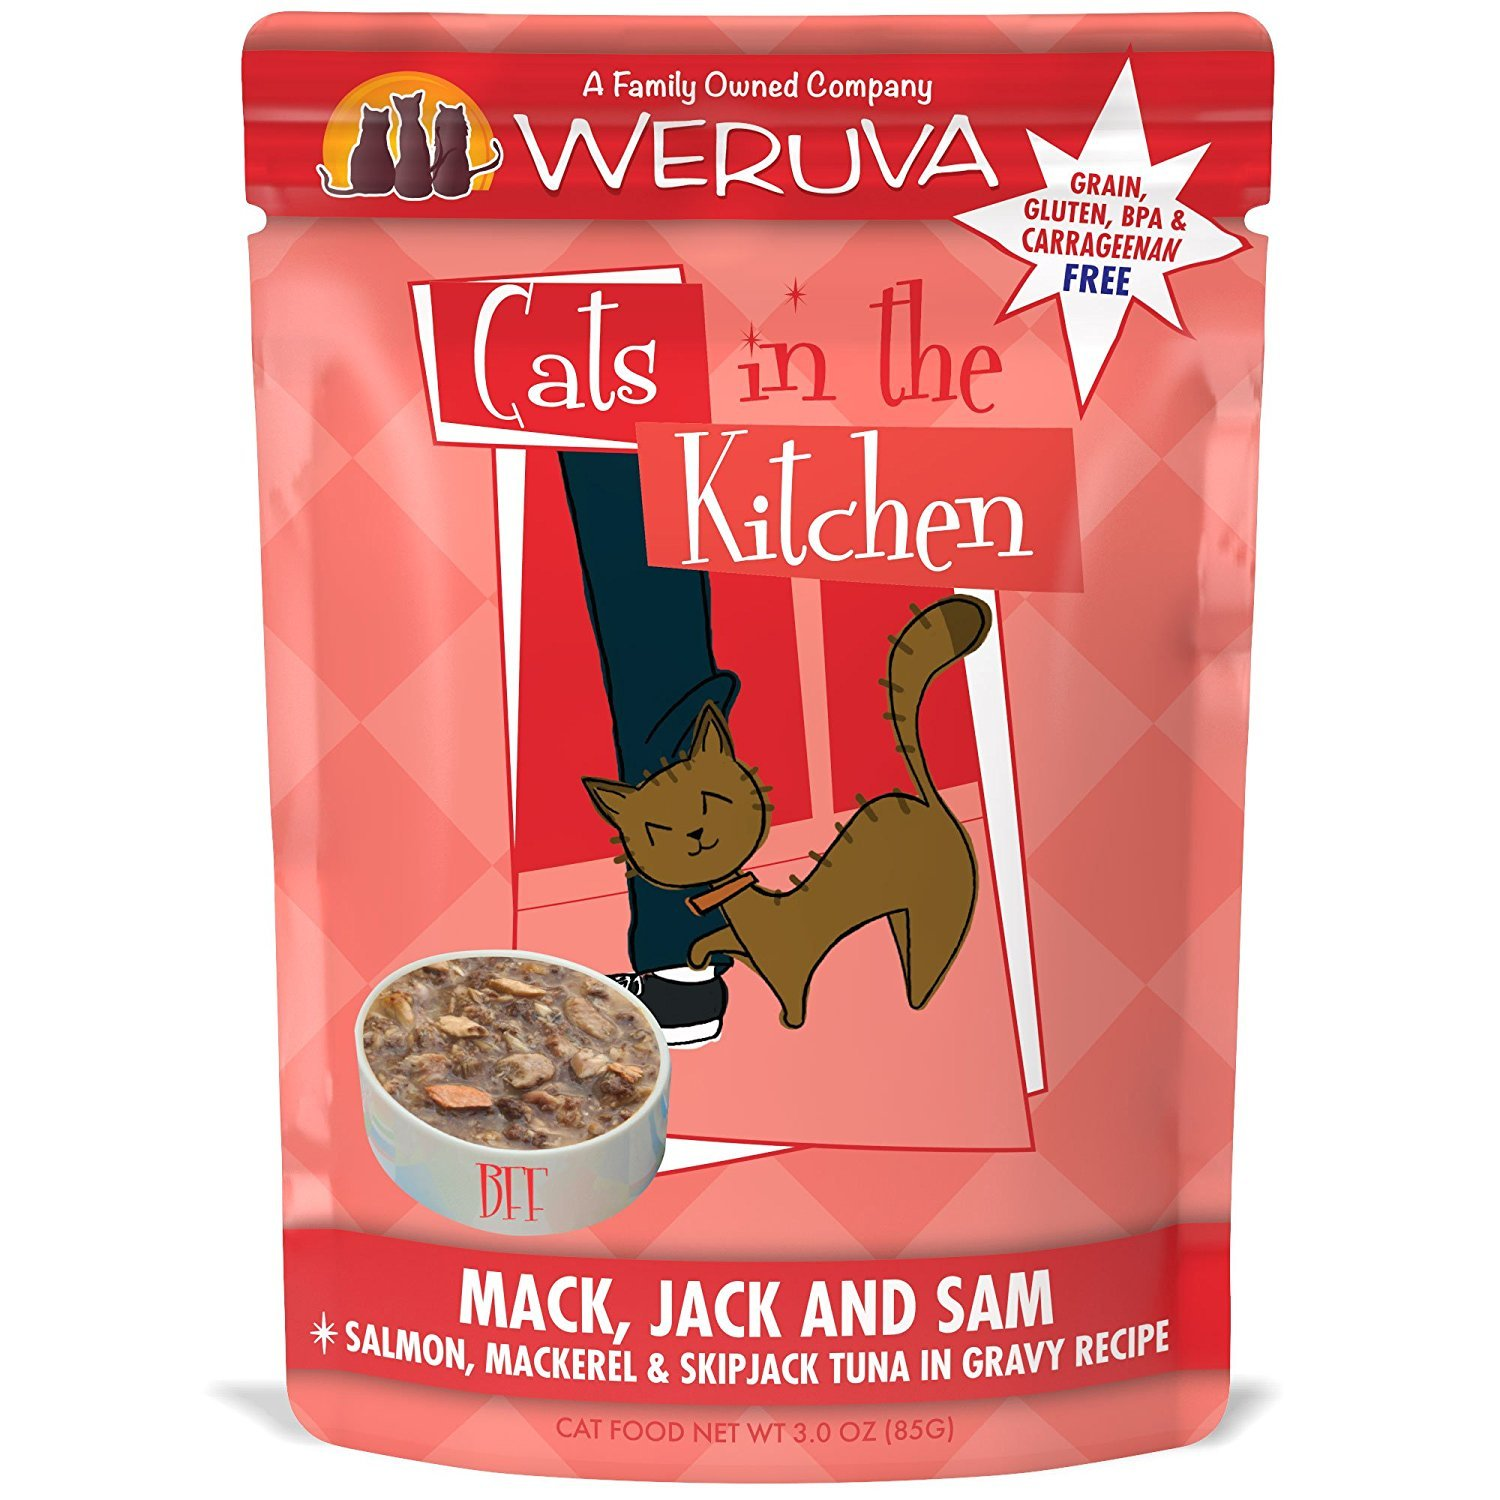 Weruva Cats in the Kitchen Mack, Jack & Sam Salmon, Mackerel & Skip Jack Tuna in Gravy, Grain-Free Wet Cat Food, 3-oz